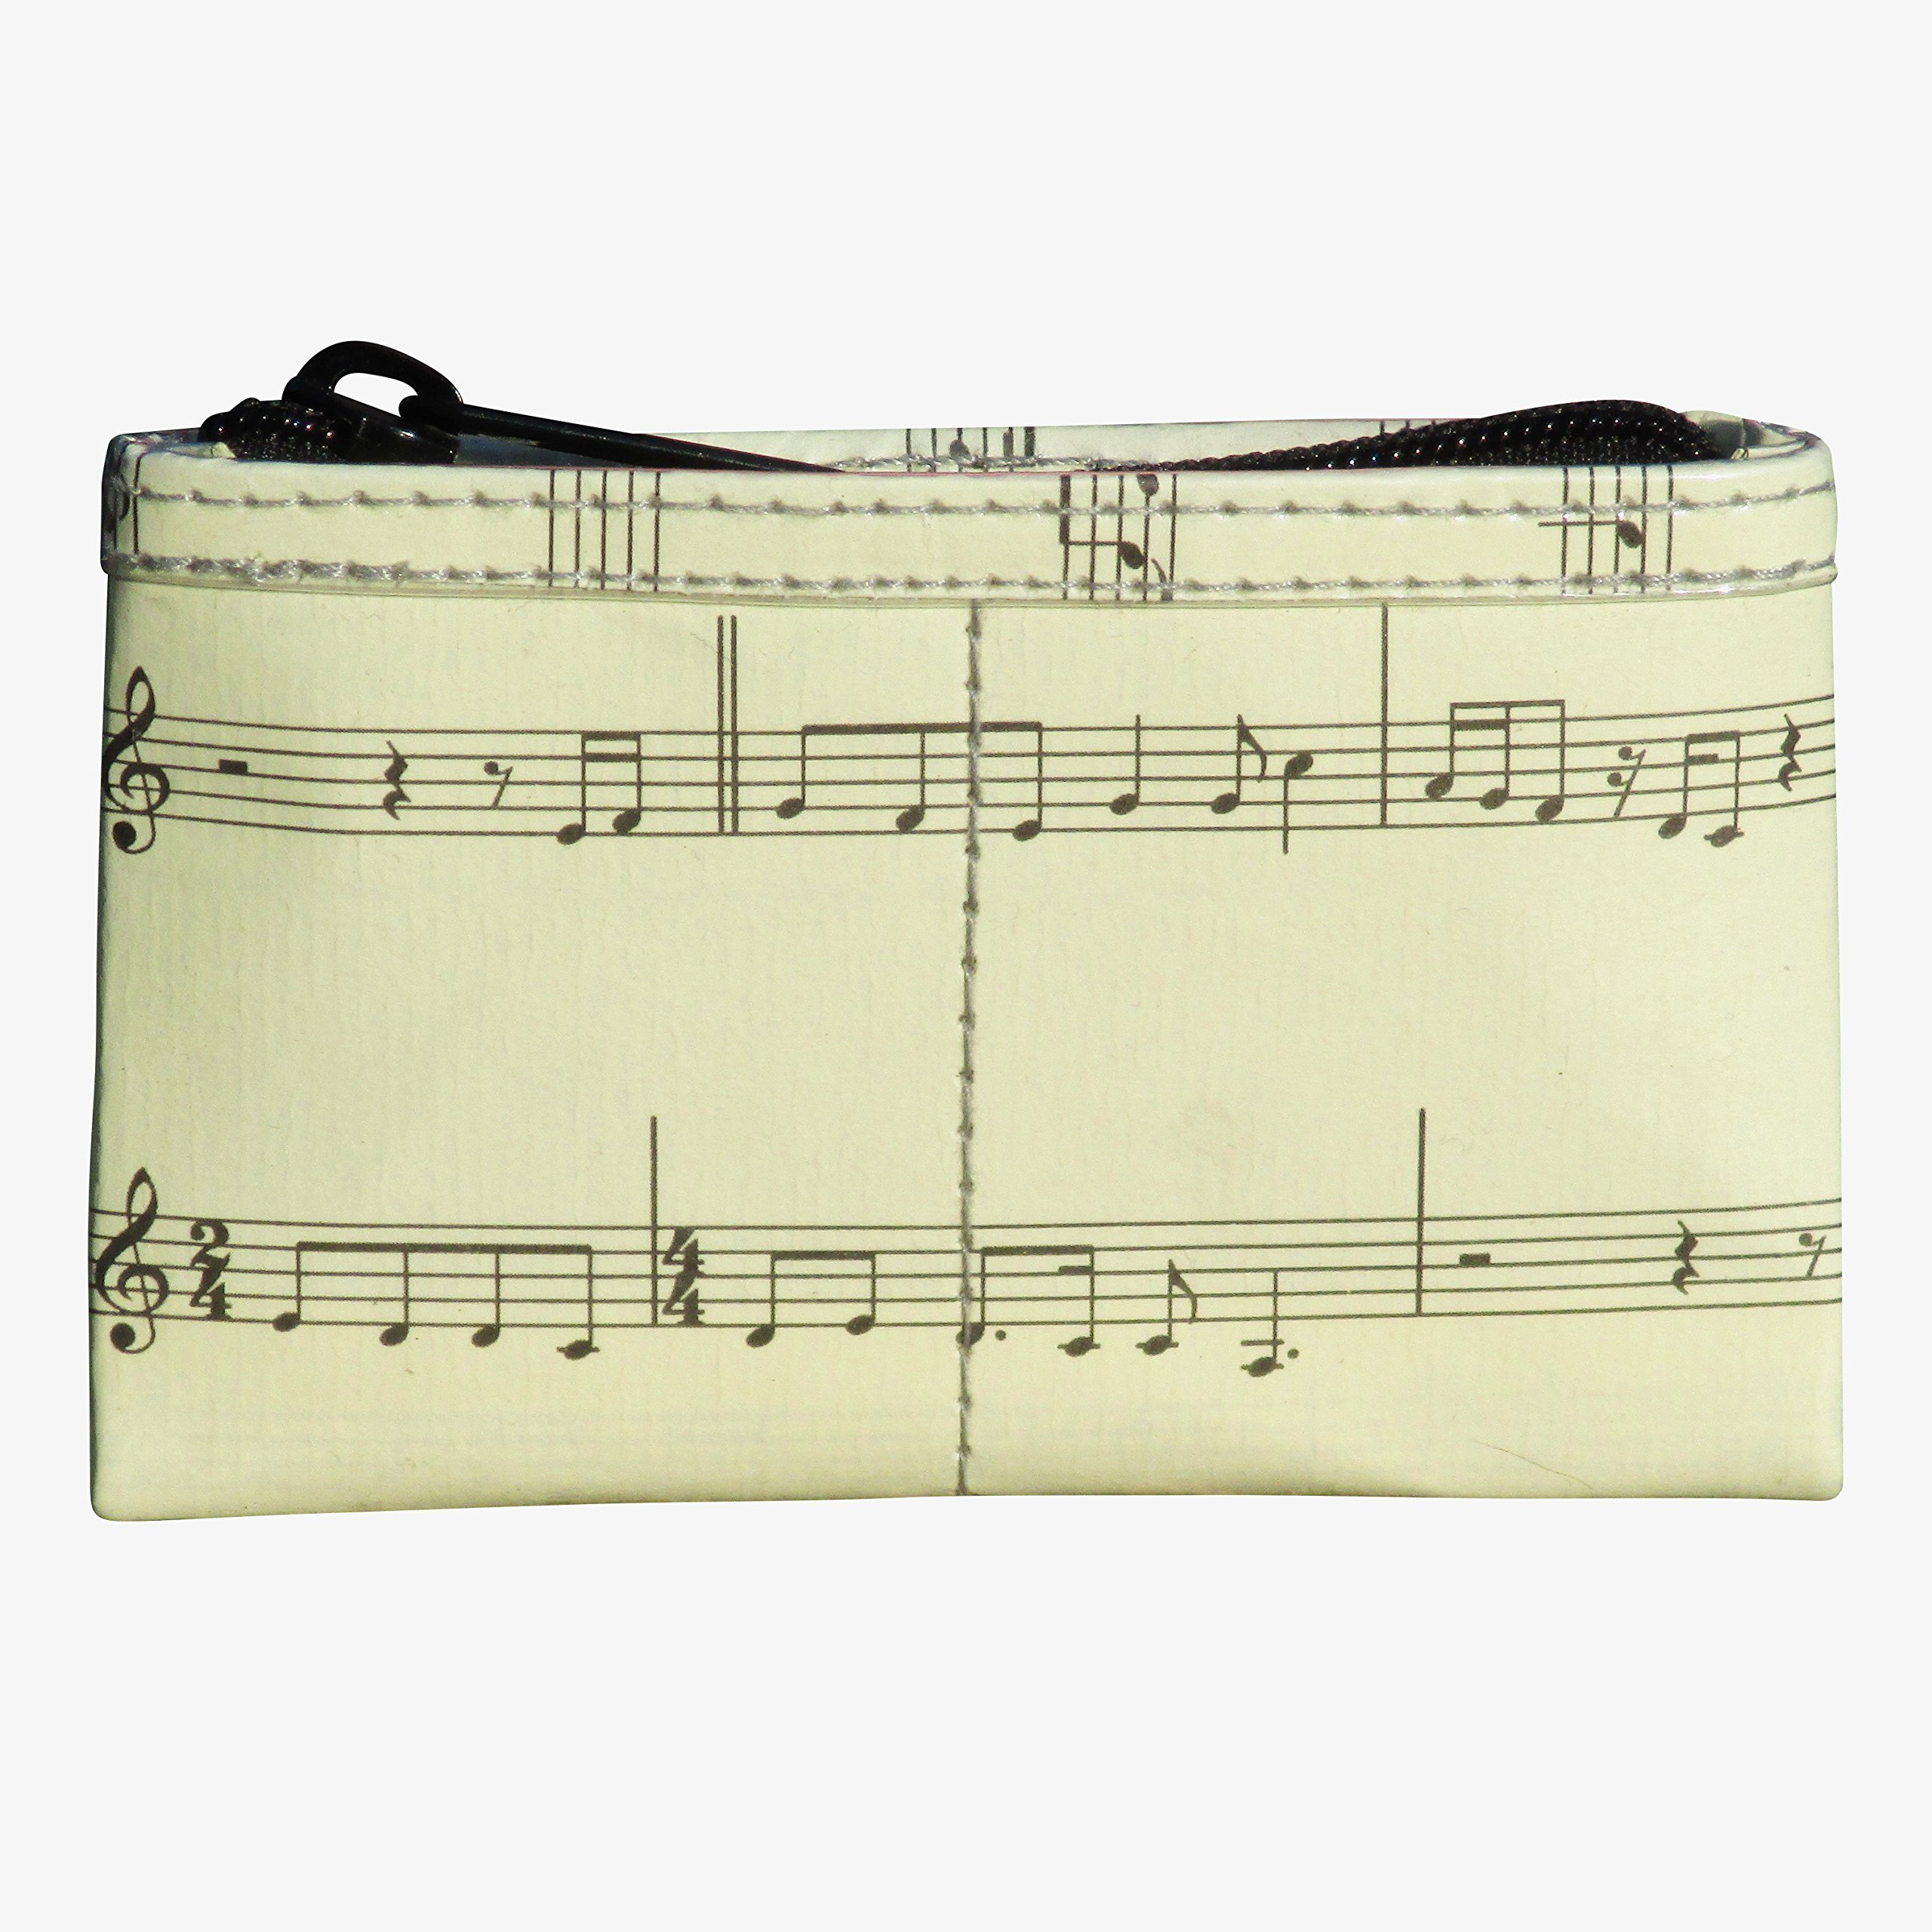 Zip coin purse made from musical note sheet - PRIME, gift gifts for musician musicians piano violin player teacher players teachers pianist violinist dancer dancers choir singer singers music notes